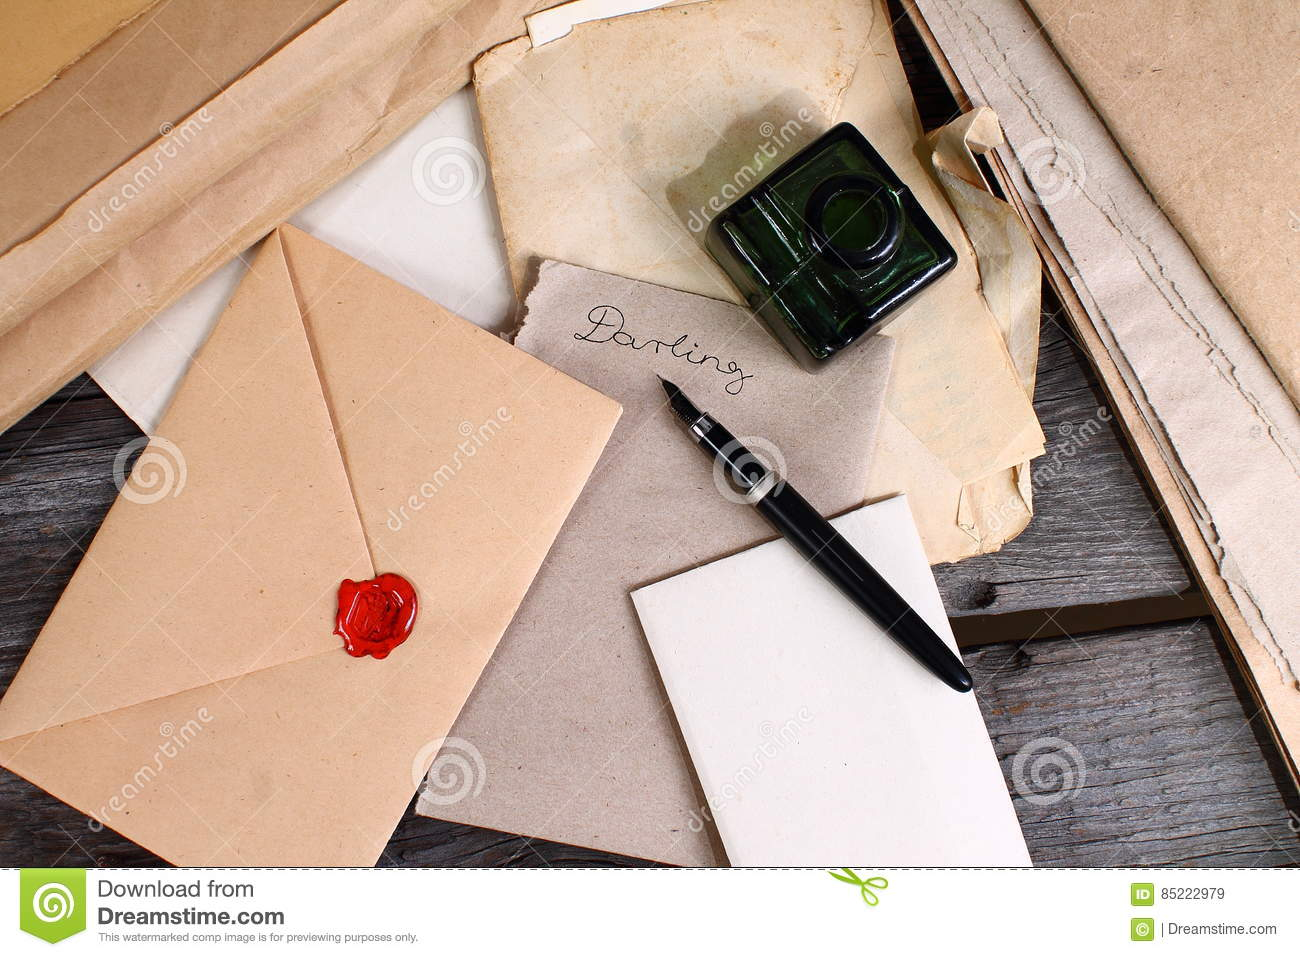 Old Times   Love Letter Writing Stock Image   Image of europe